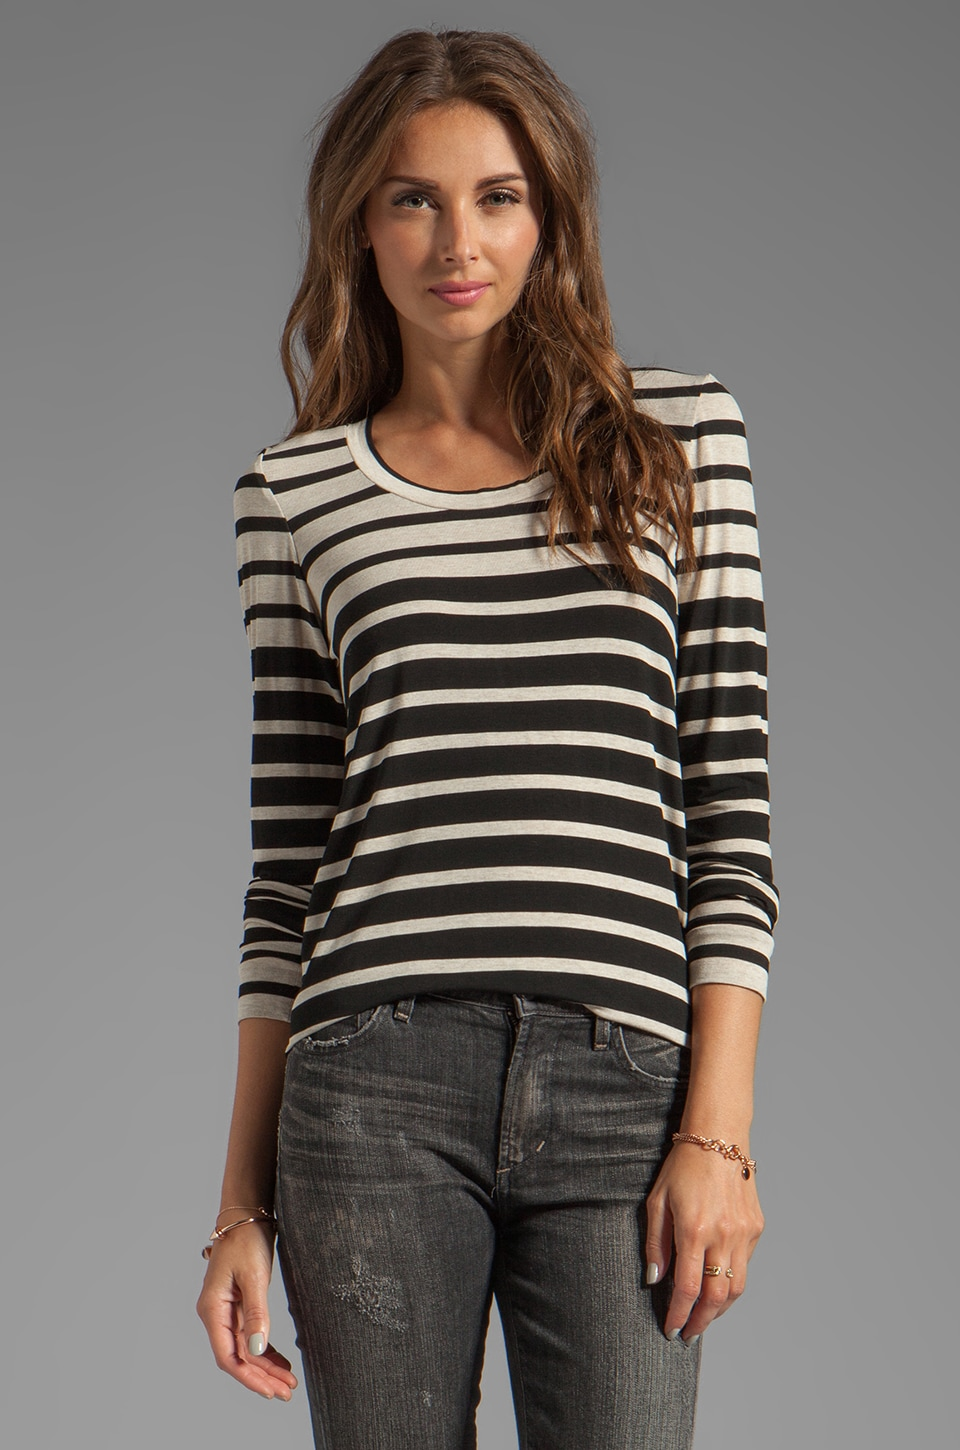 Whetherly Engineered Stripe Rosewood Long Sleeve in Beige/Black